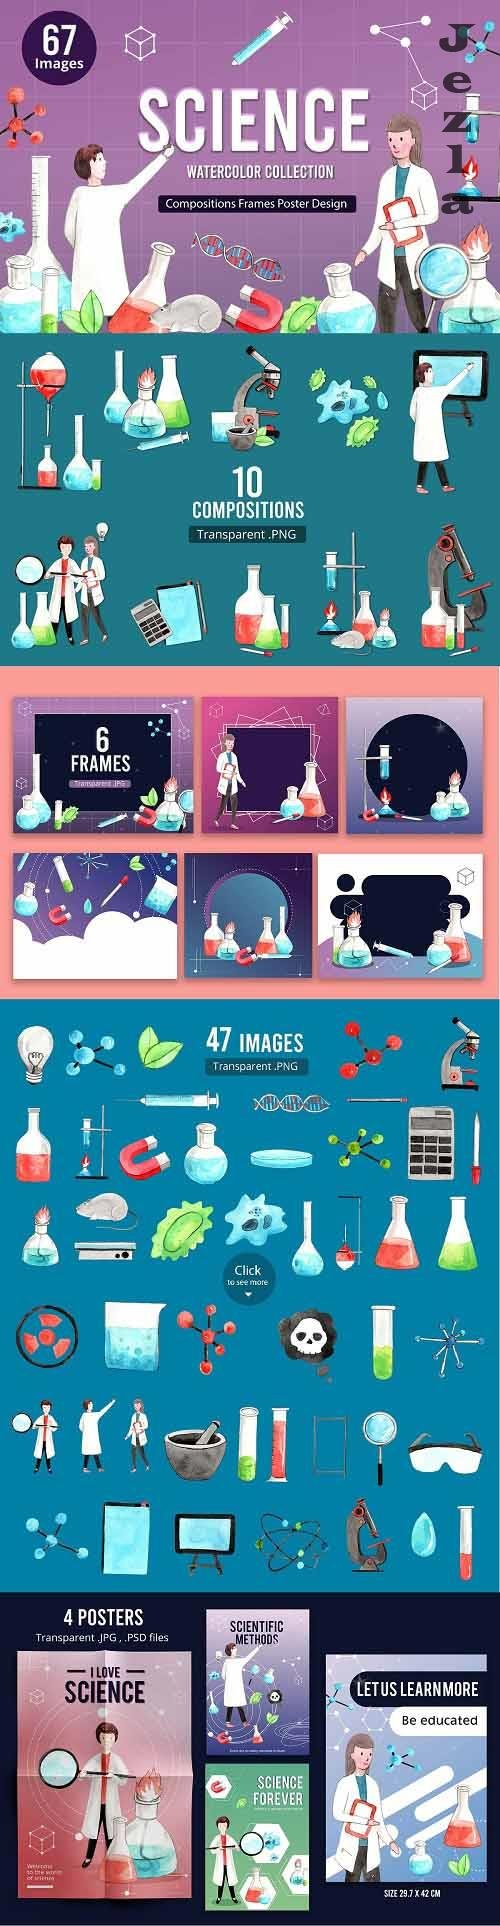 Science and scientific equipments - 5755520